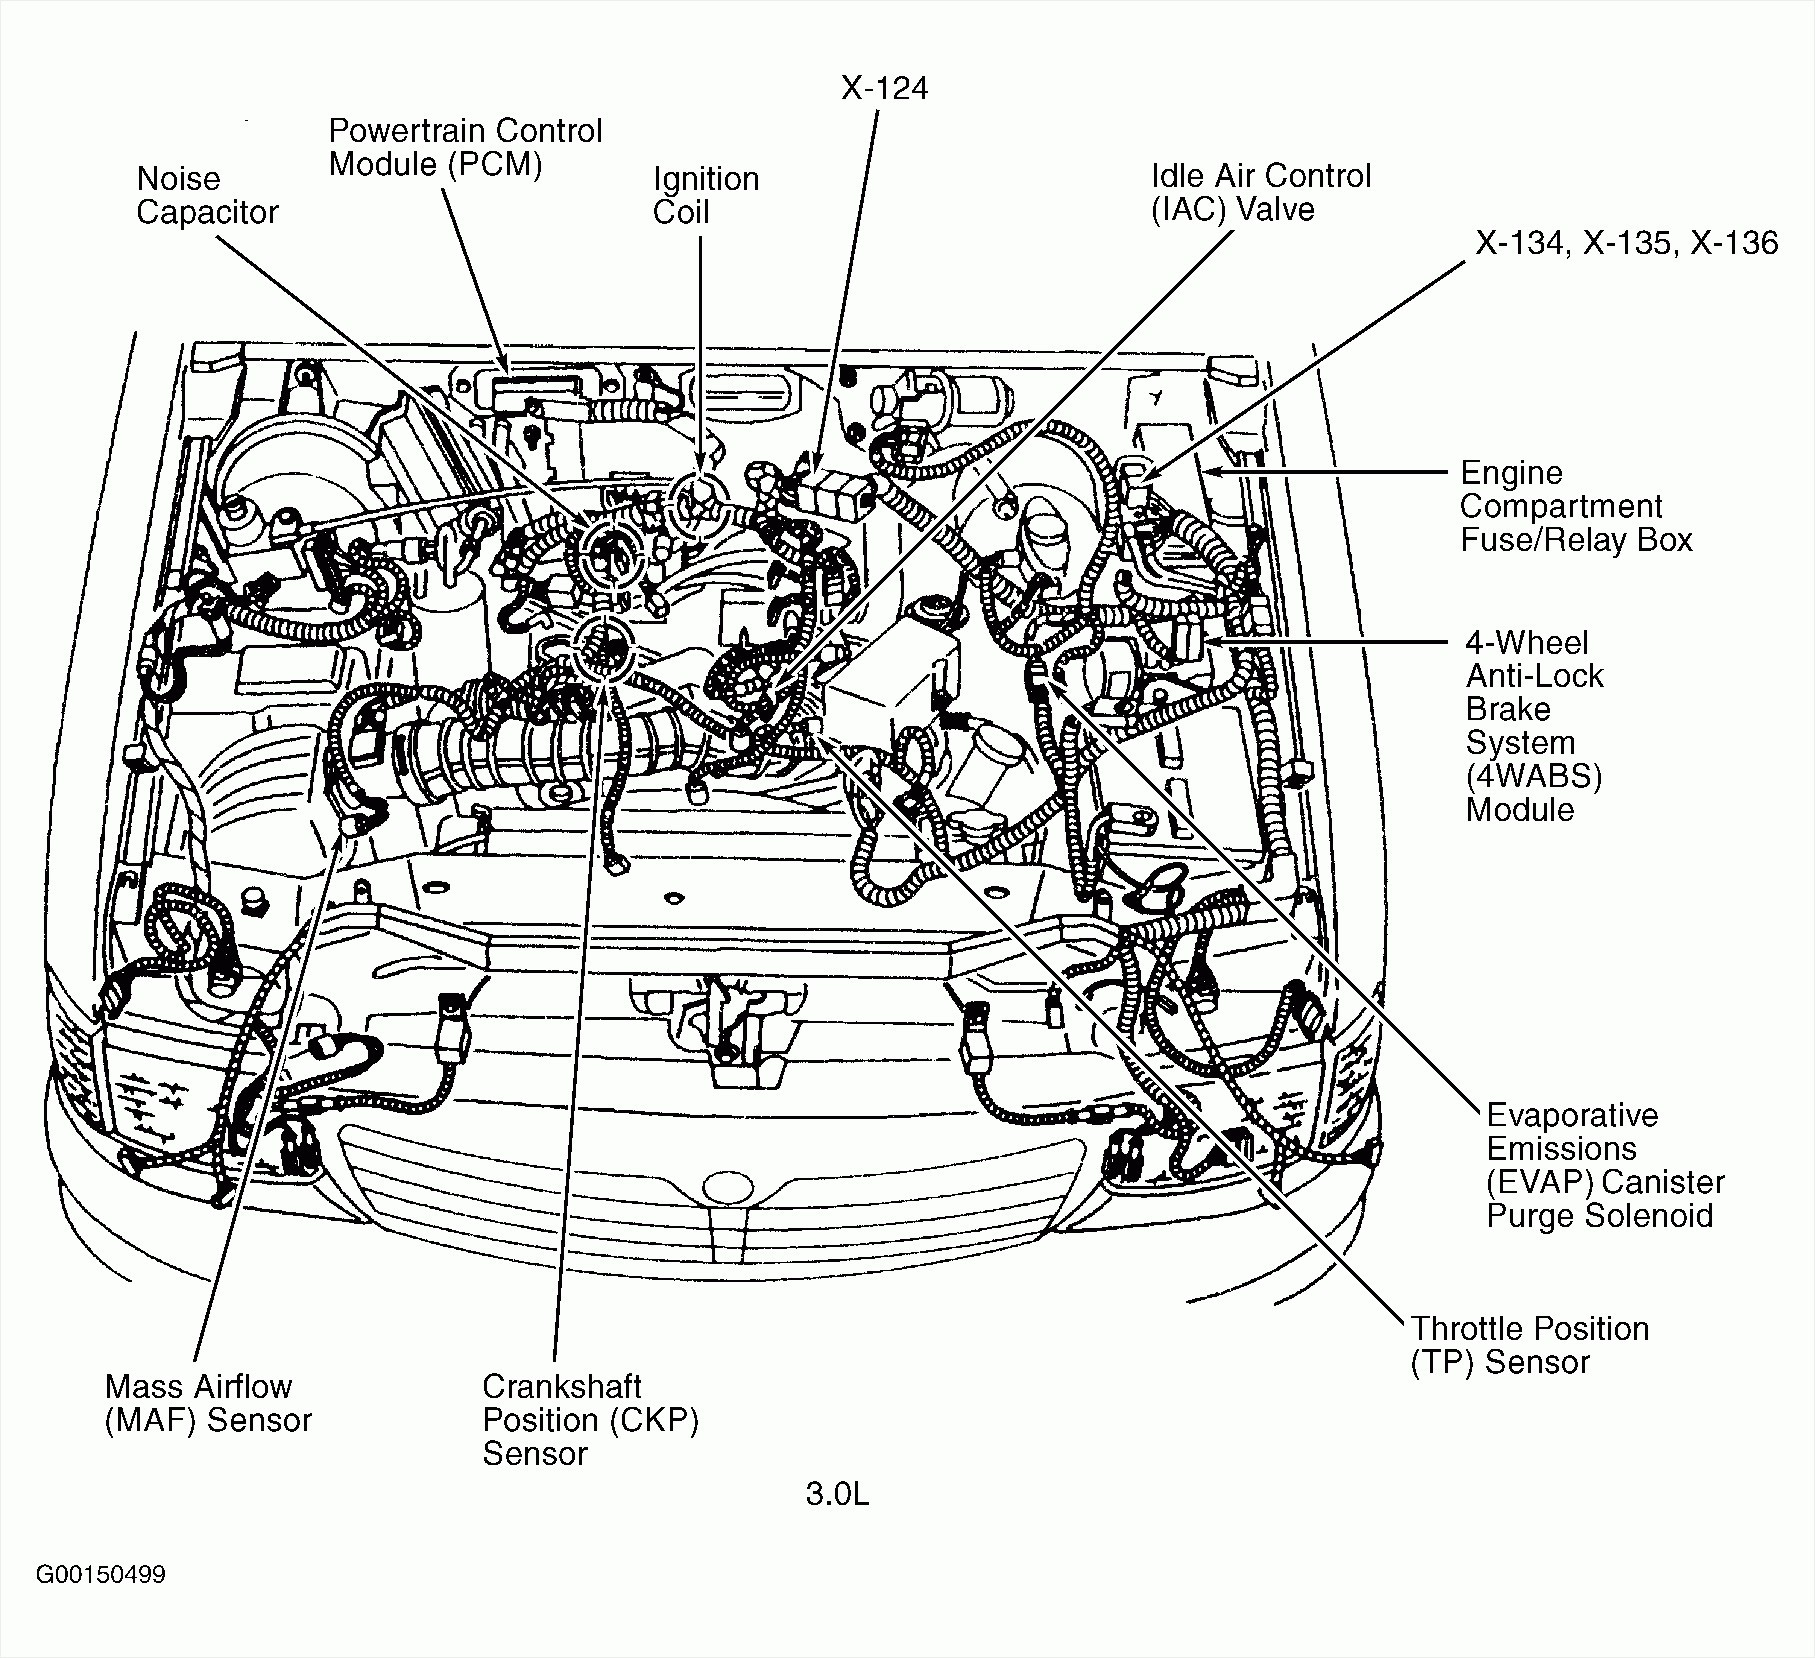 Ford 3 8 V6 Engine Timing Cover Diagram Wiring Like A Pro 9 8l Facts About U2022 Rh Designsole Co 2001 Mustang Ranger 40